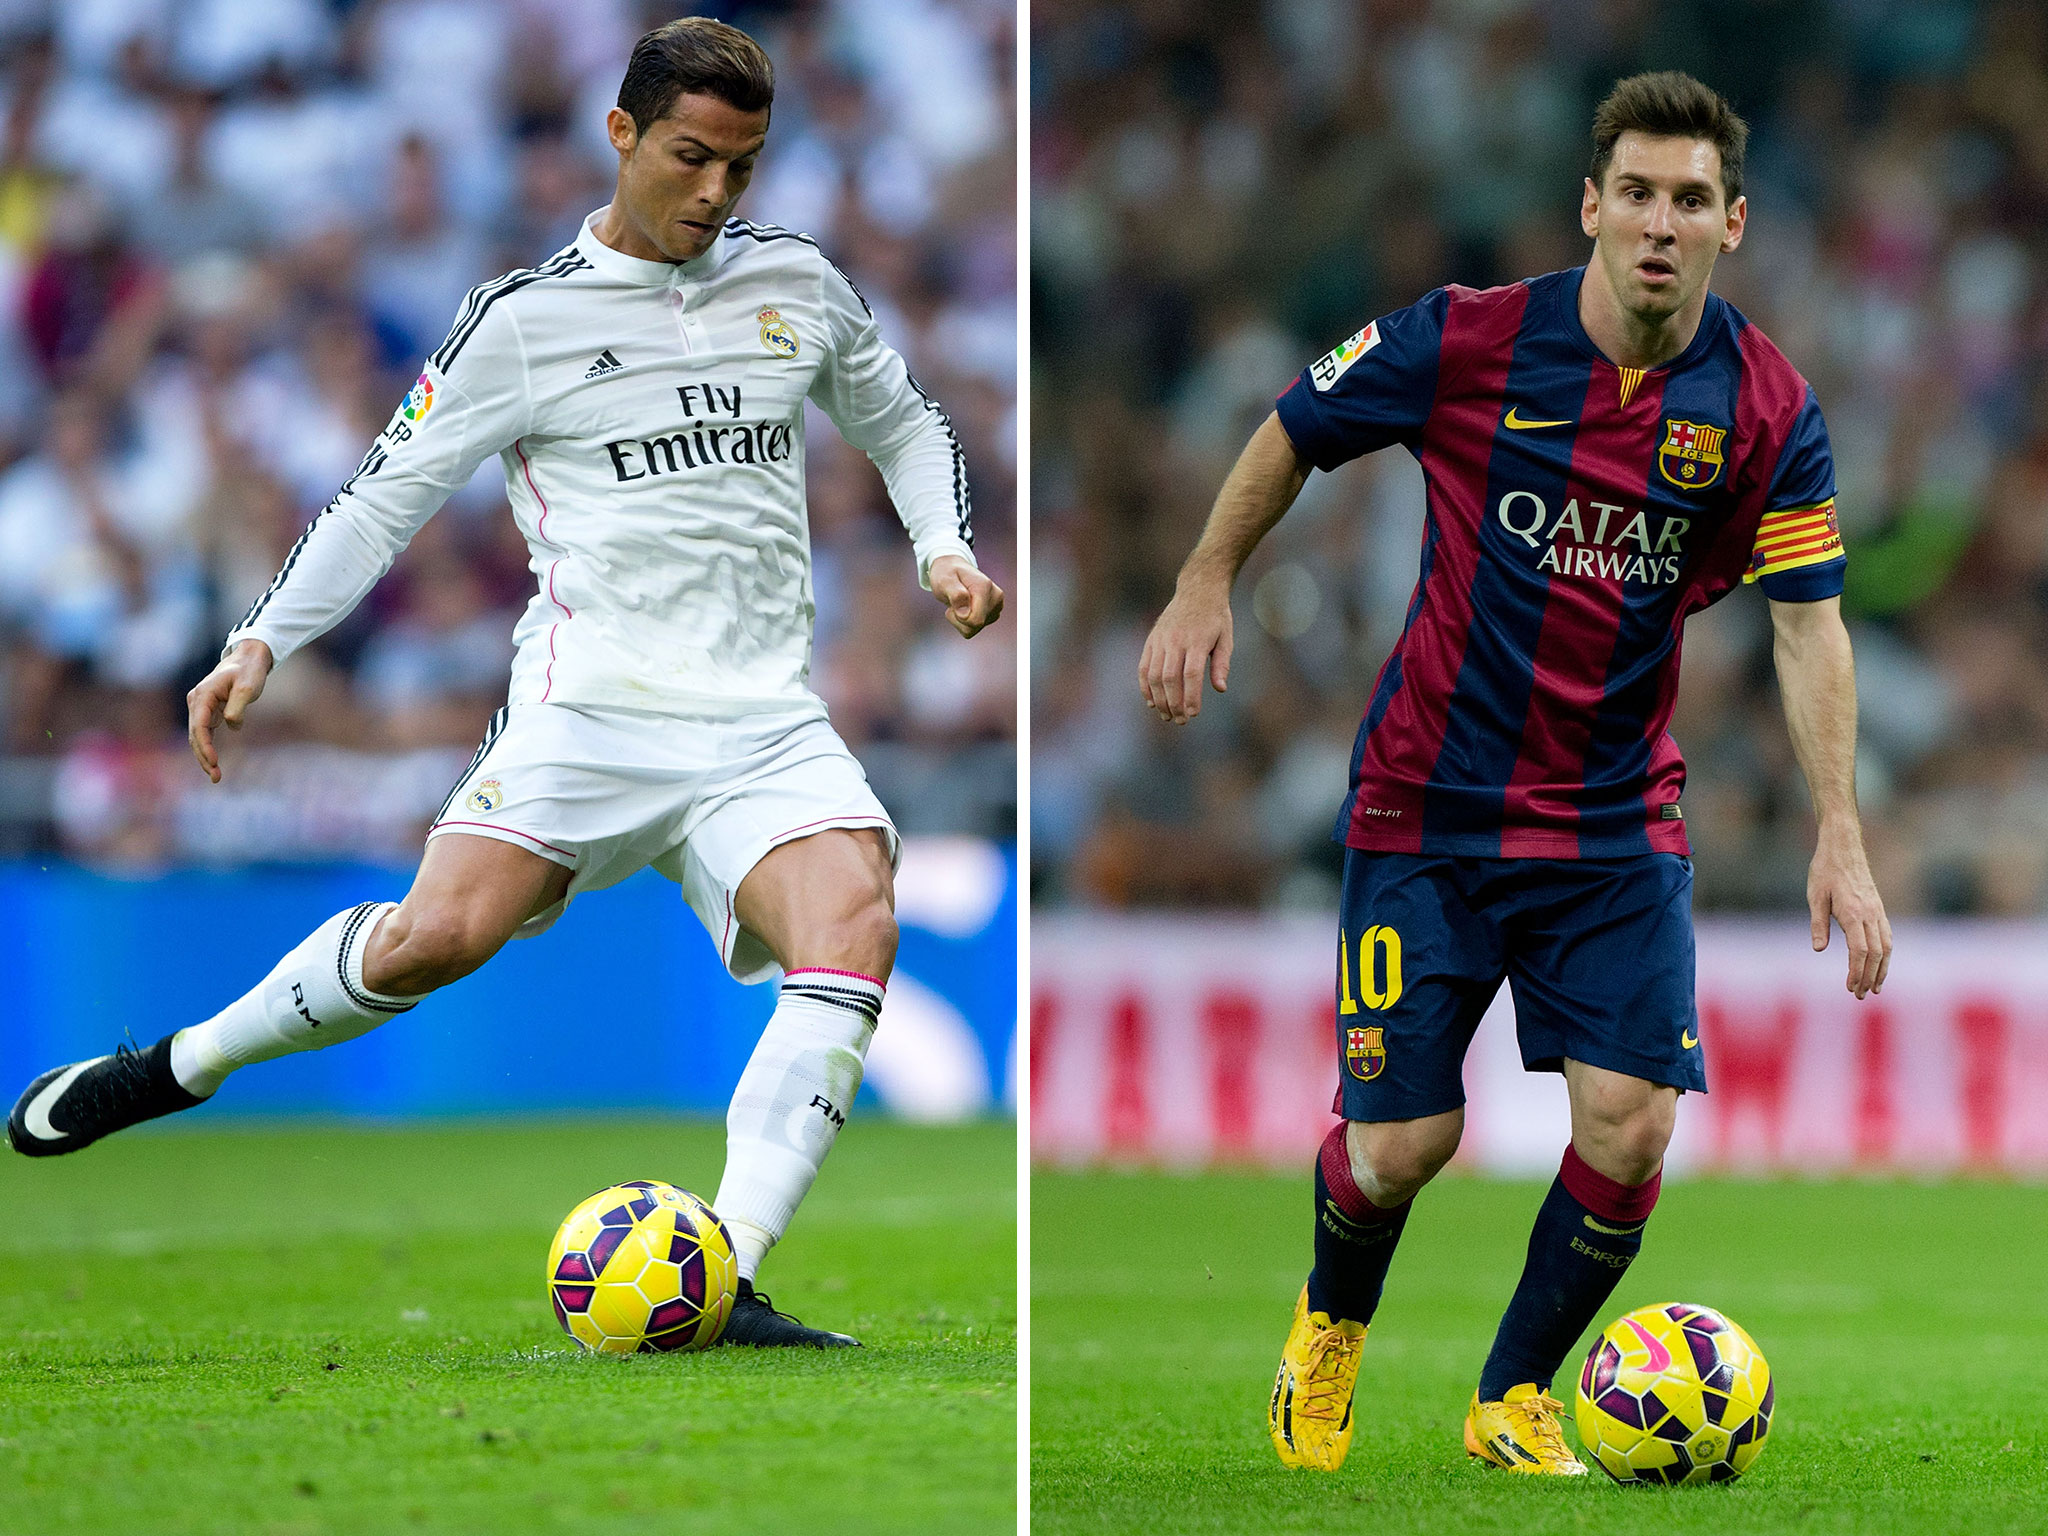 Ronaldo Vs Messi Wallpapers 2015 2048x1536